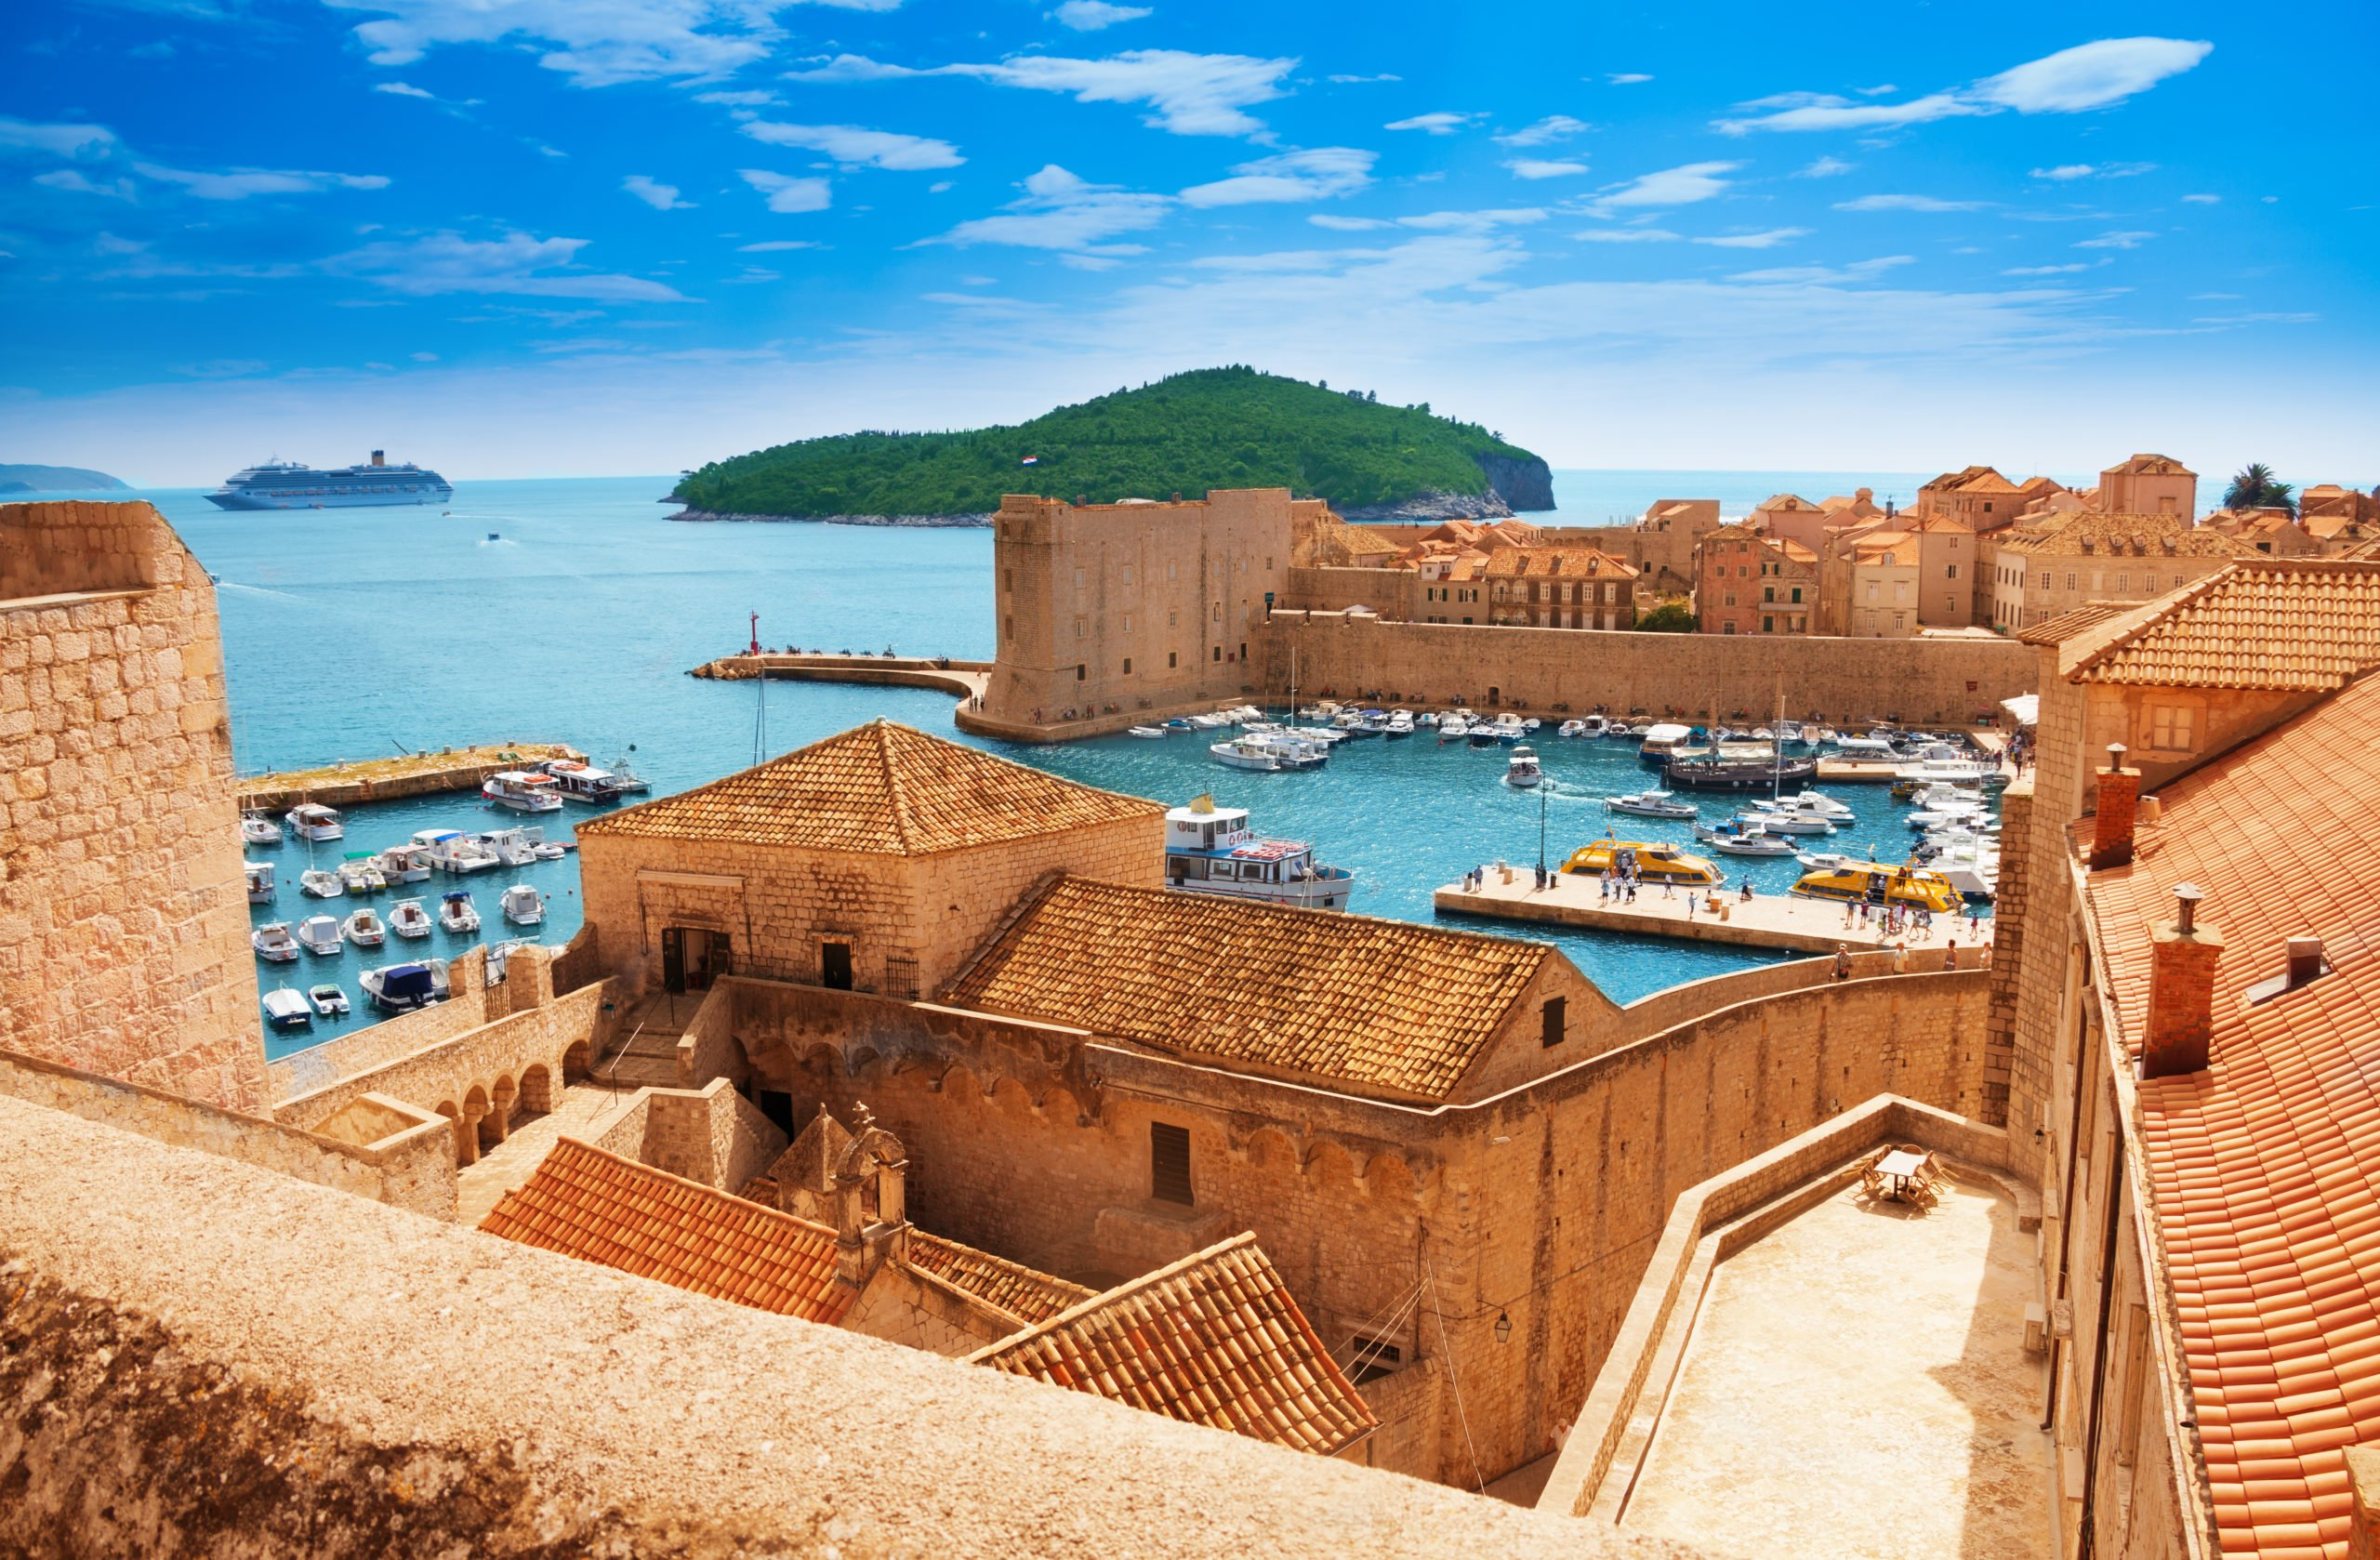 Discover Dubrovniks History And Some Of The Most Famous Film Locations Of Game Of Thrones During The Dubrovnik 2 Day Package Tour